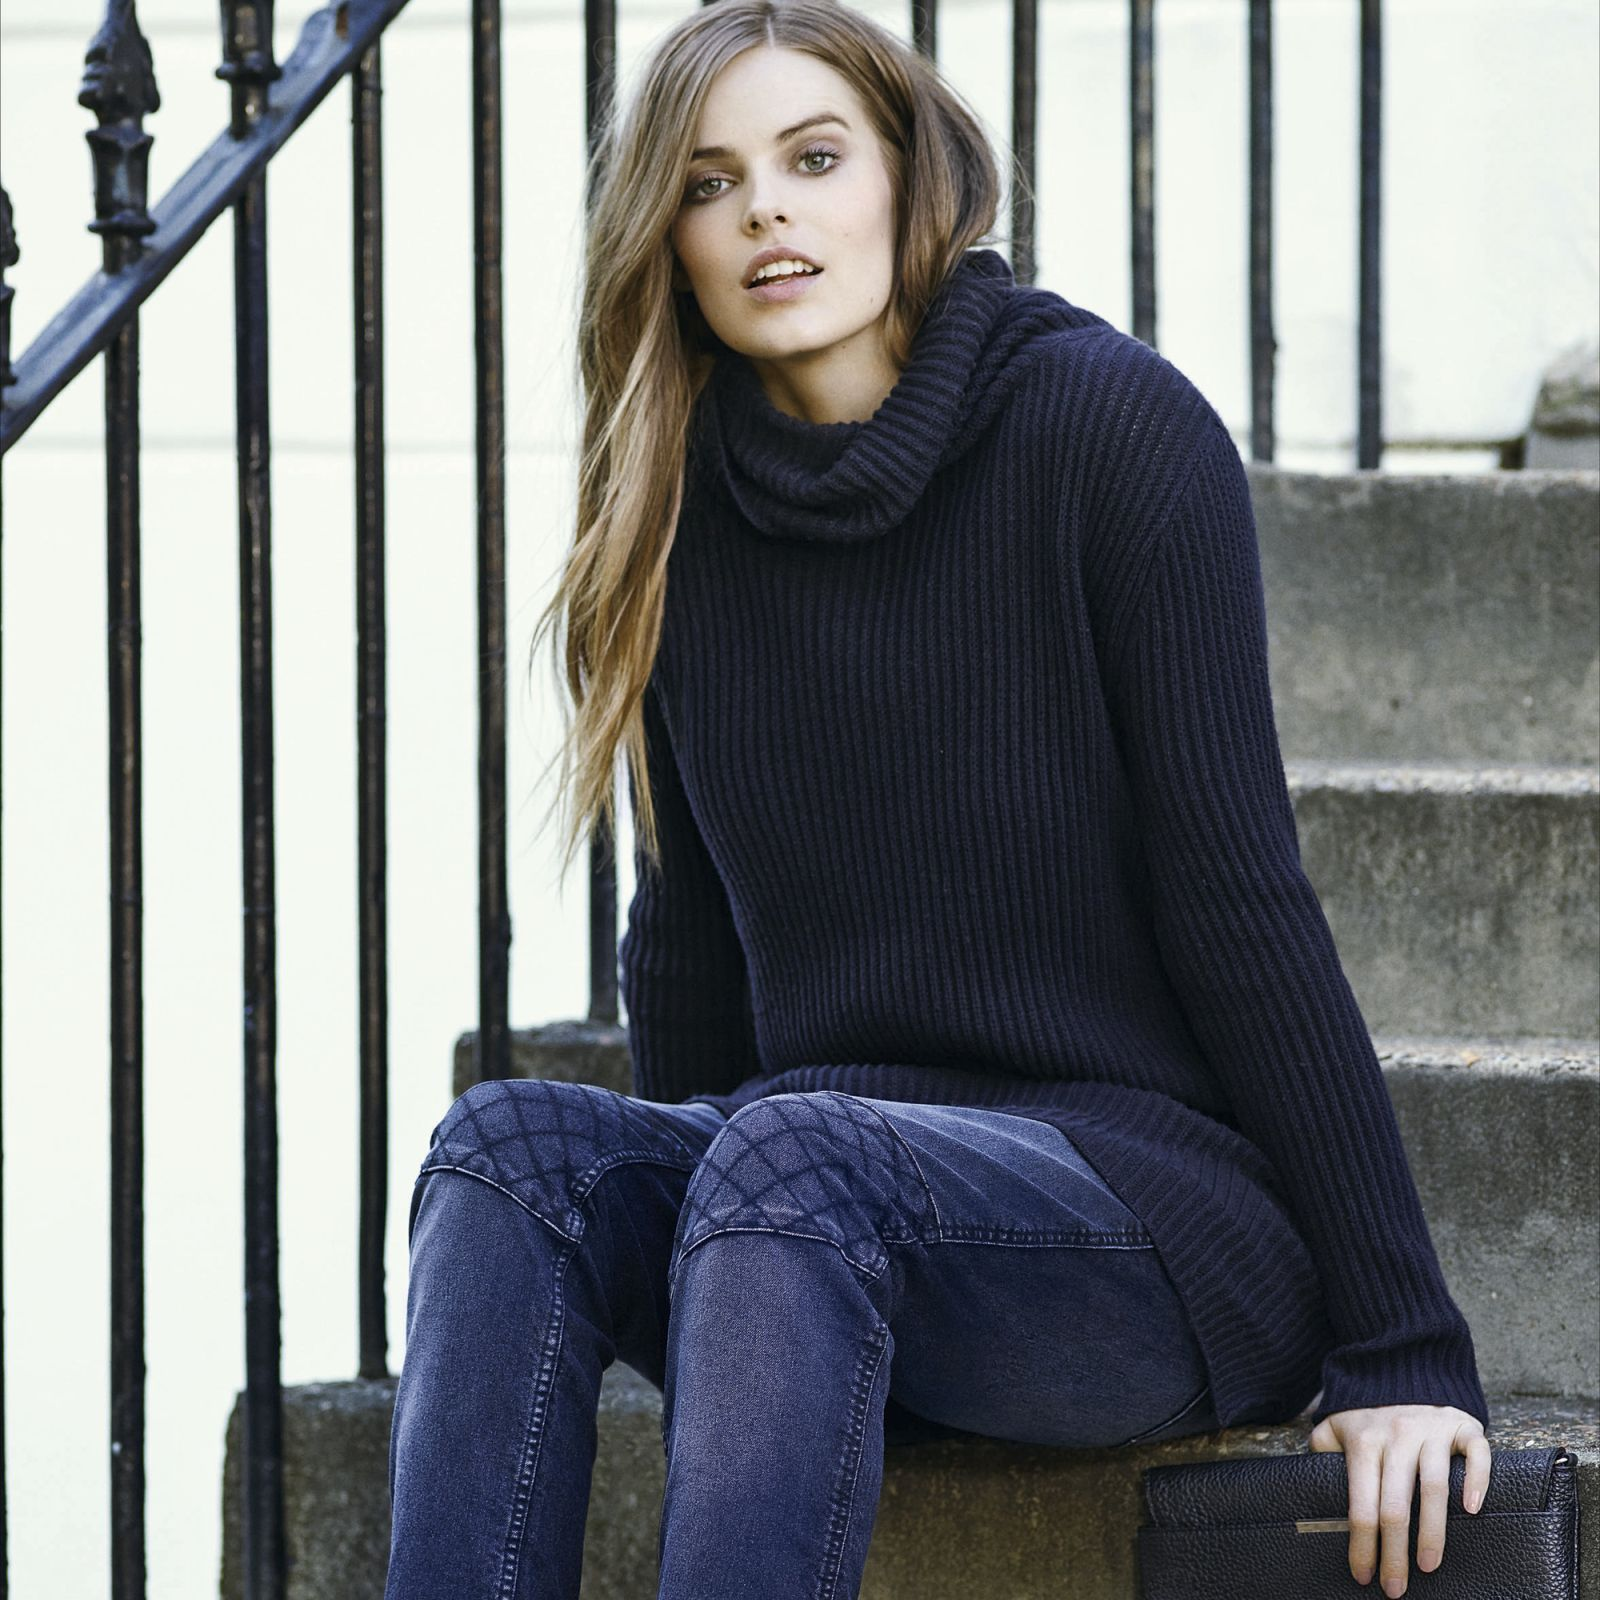 Robyn Lawley for Violeta at Mango